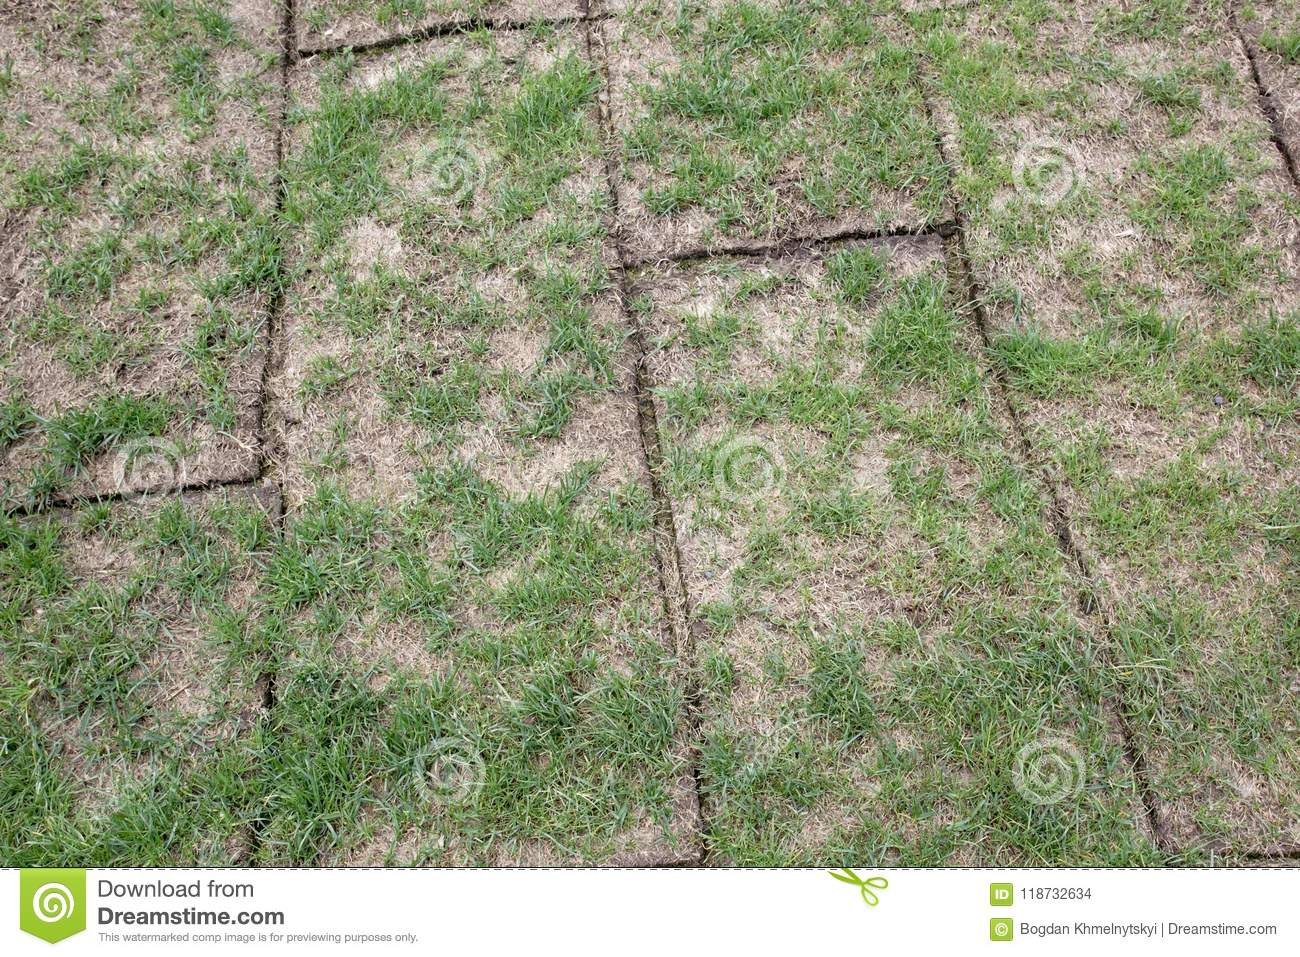 Unfolded land rolls with green grass, grass is very bad quality, sparse and small